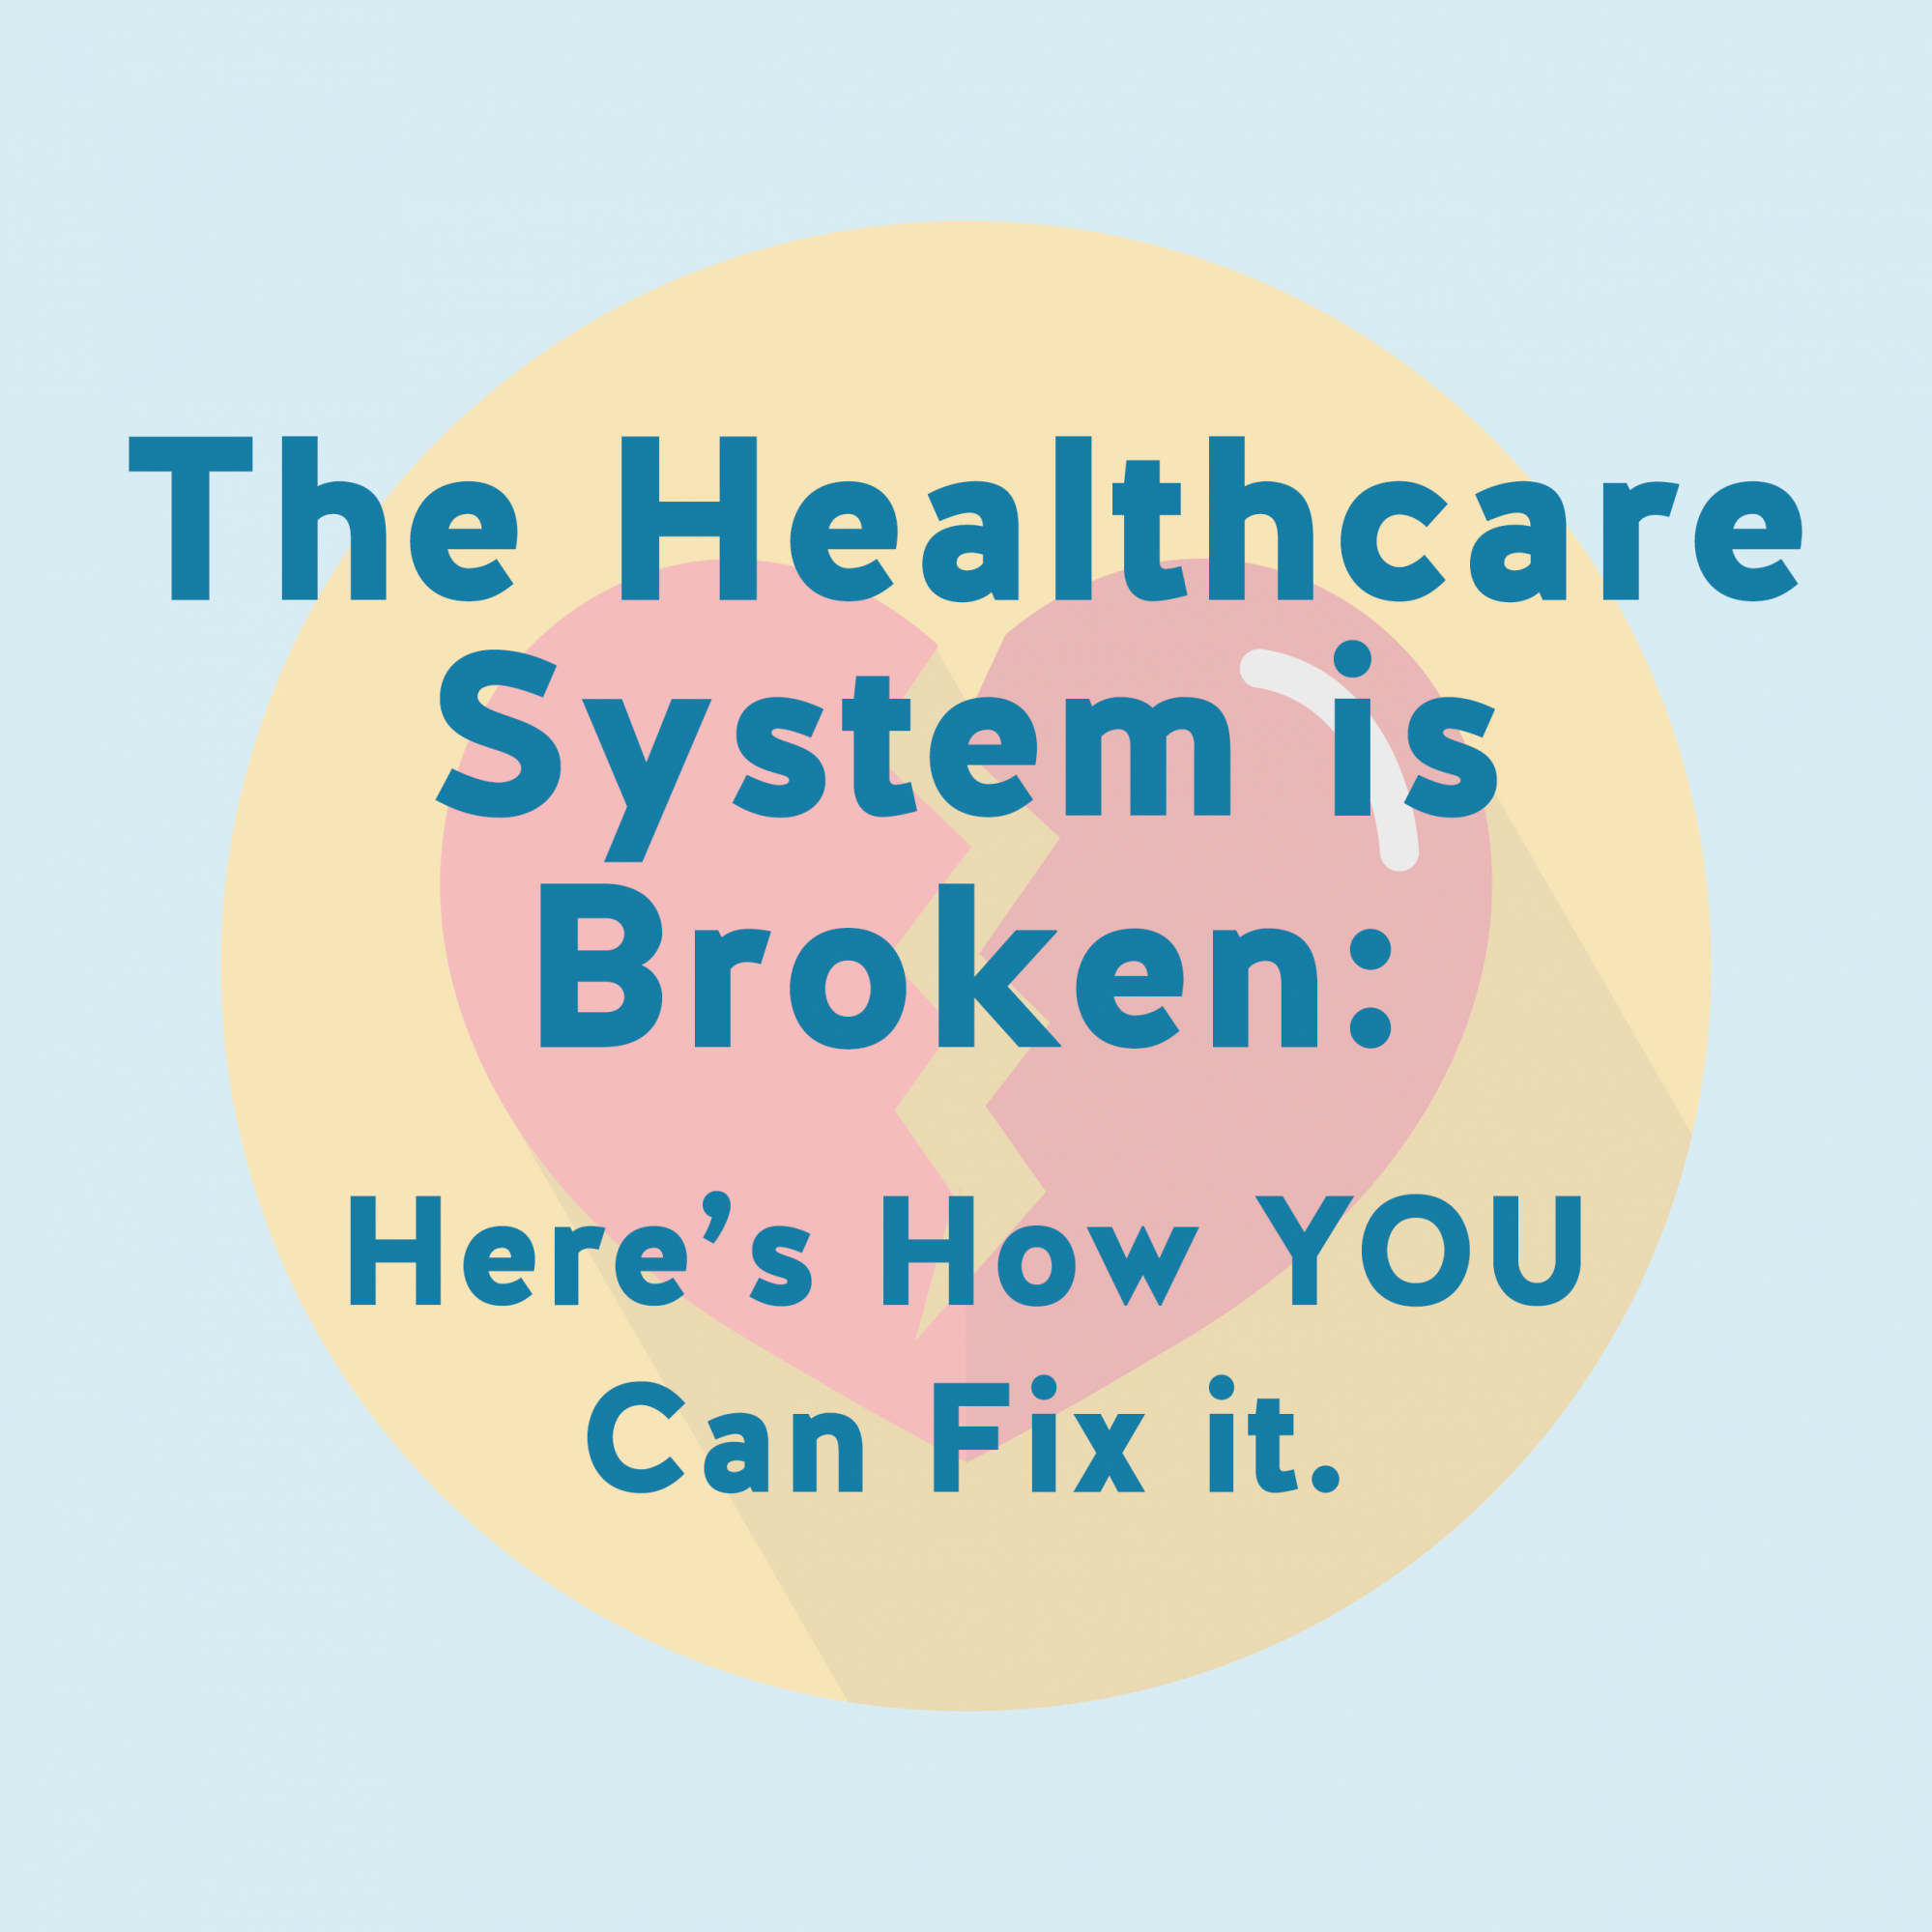 The Health Care System is Broken: Here's How YOU Can Fix It.